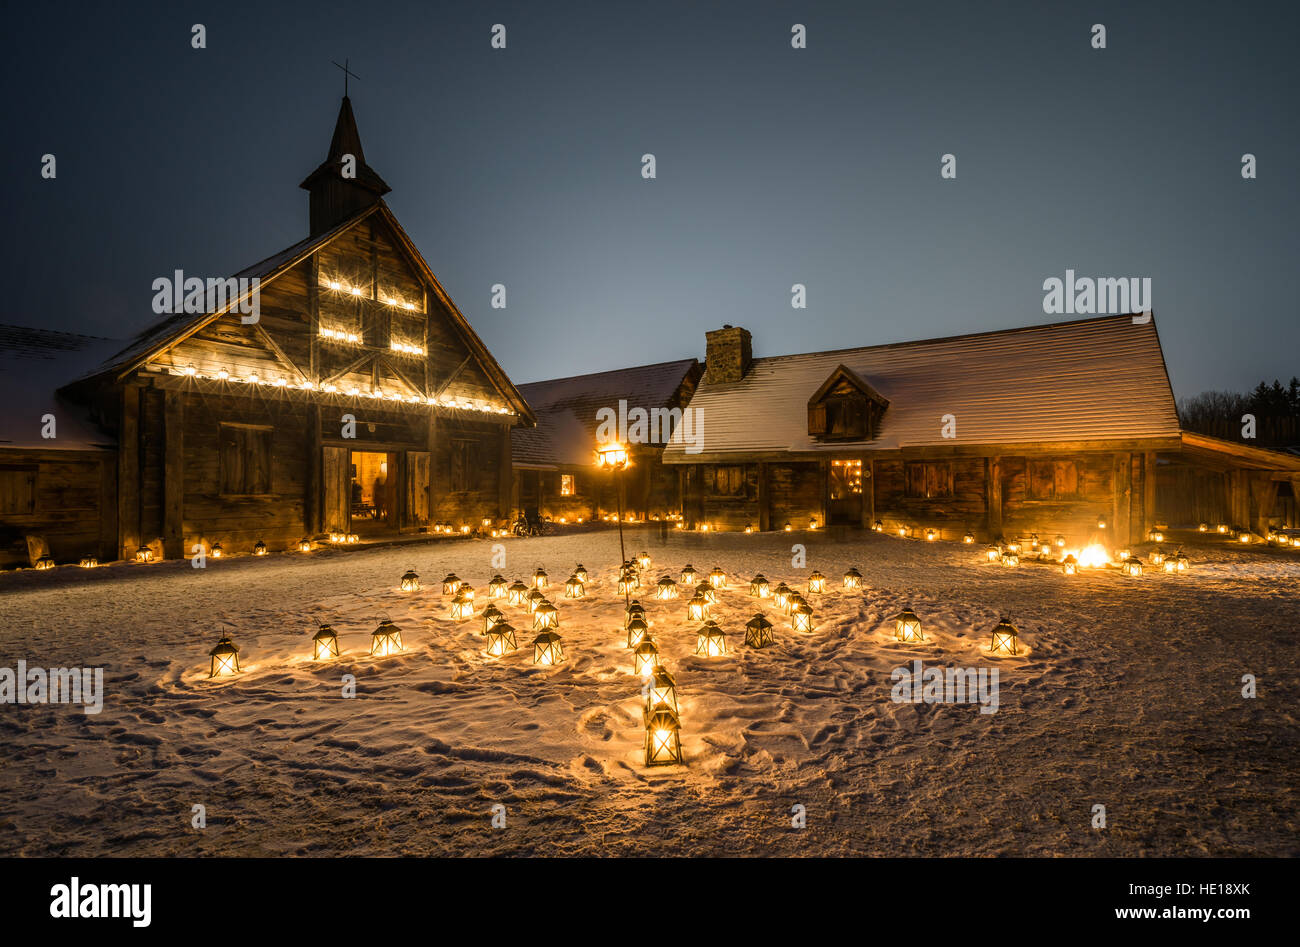 Rustic Cabins at Twilight Illuminated by the Glow of Candle Lanterns at Christmas time - Stock Image